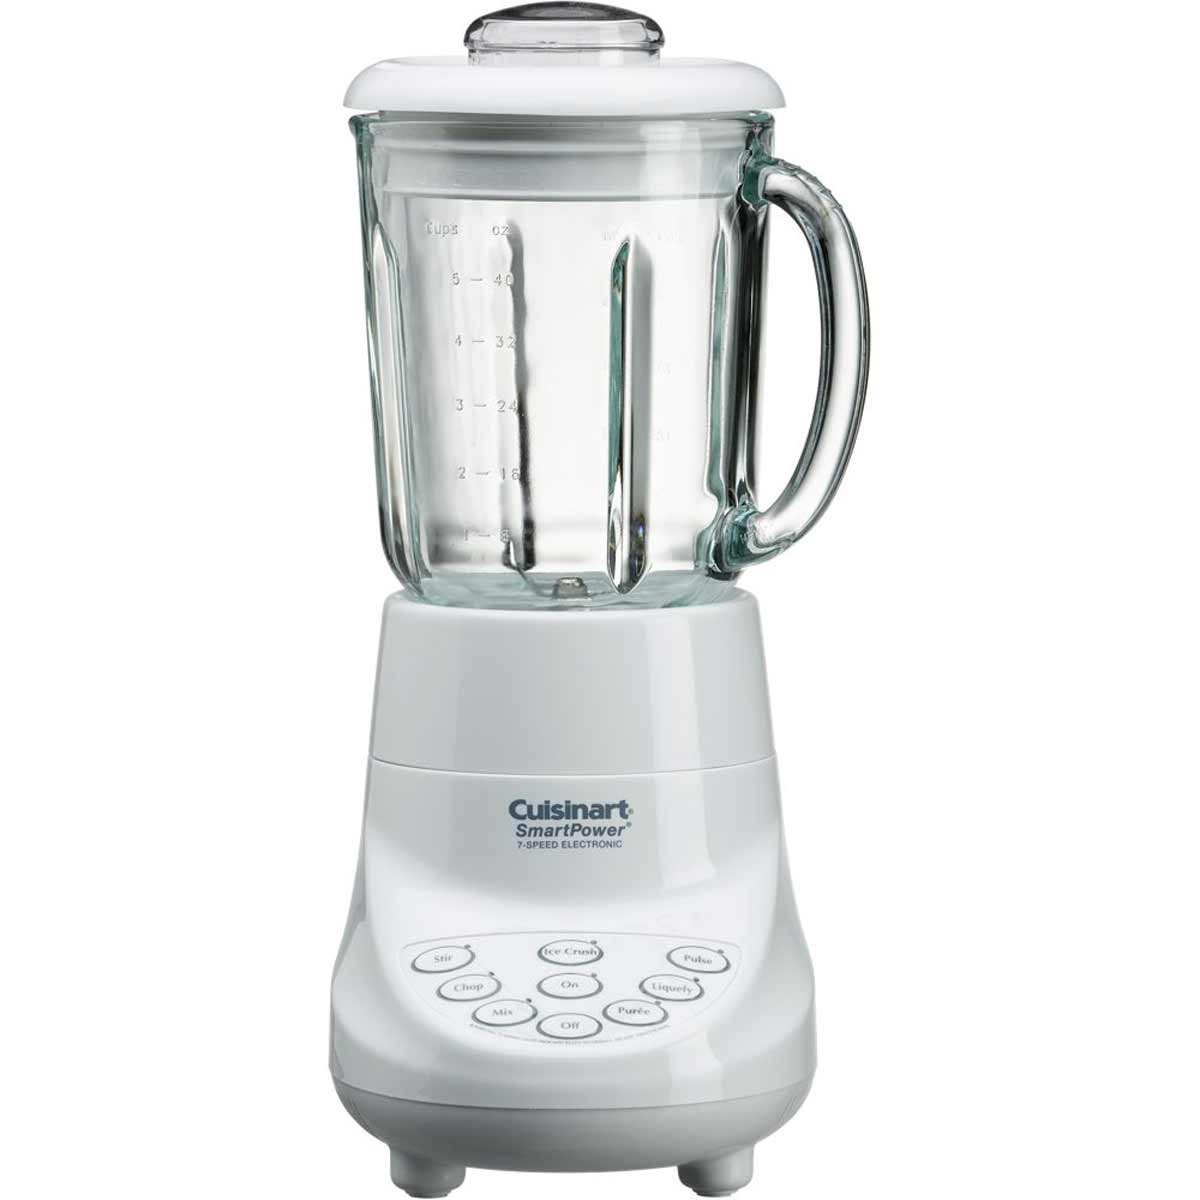 Cuisinart smart power best blender for crushing ice